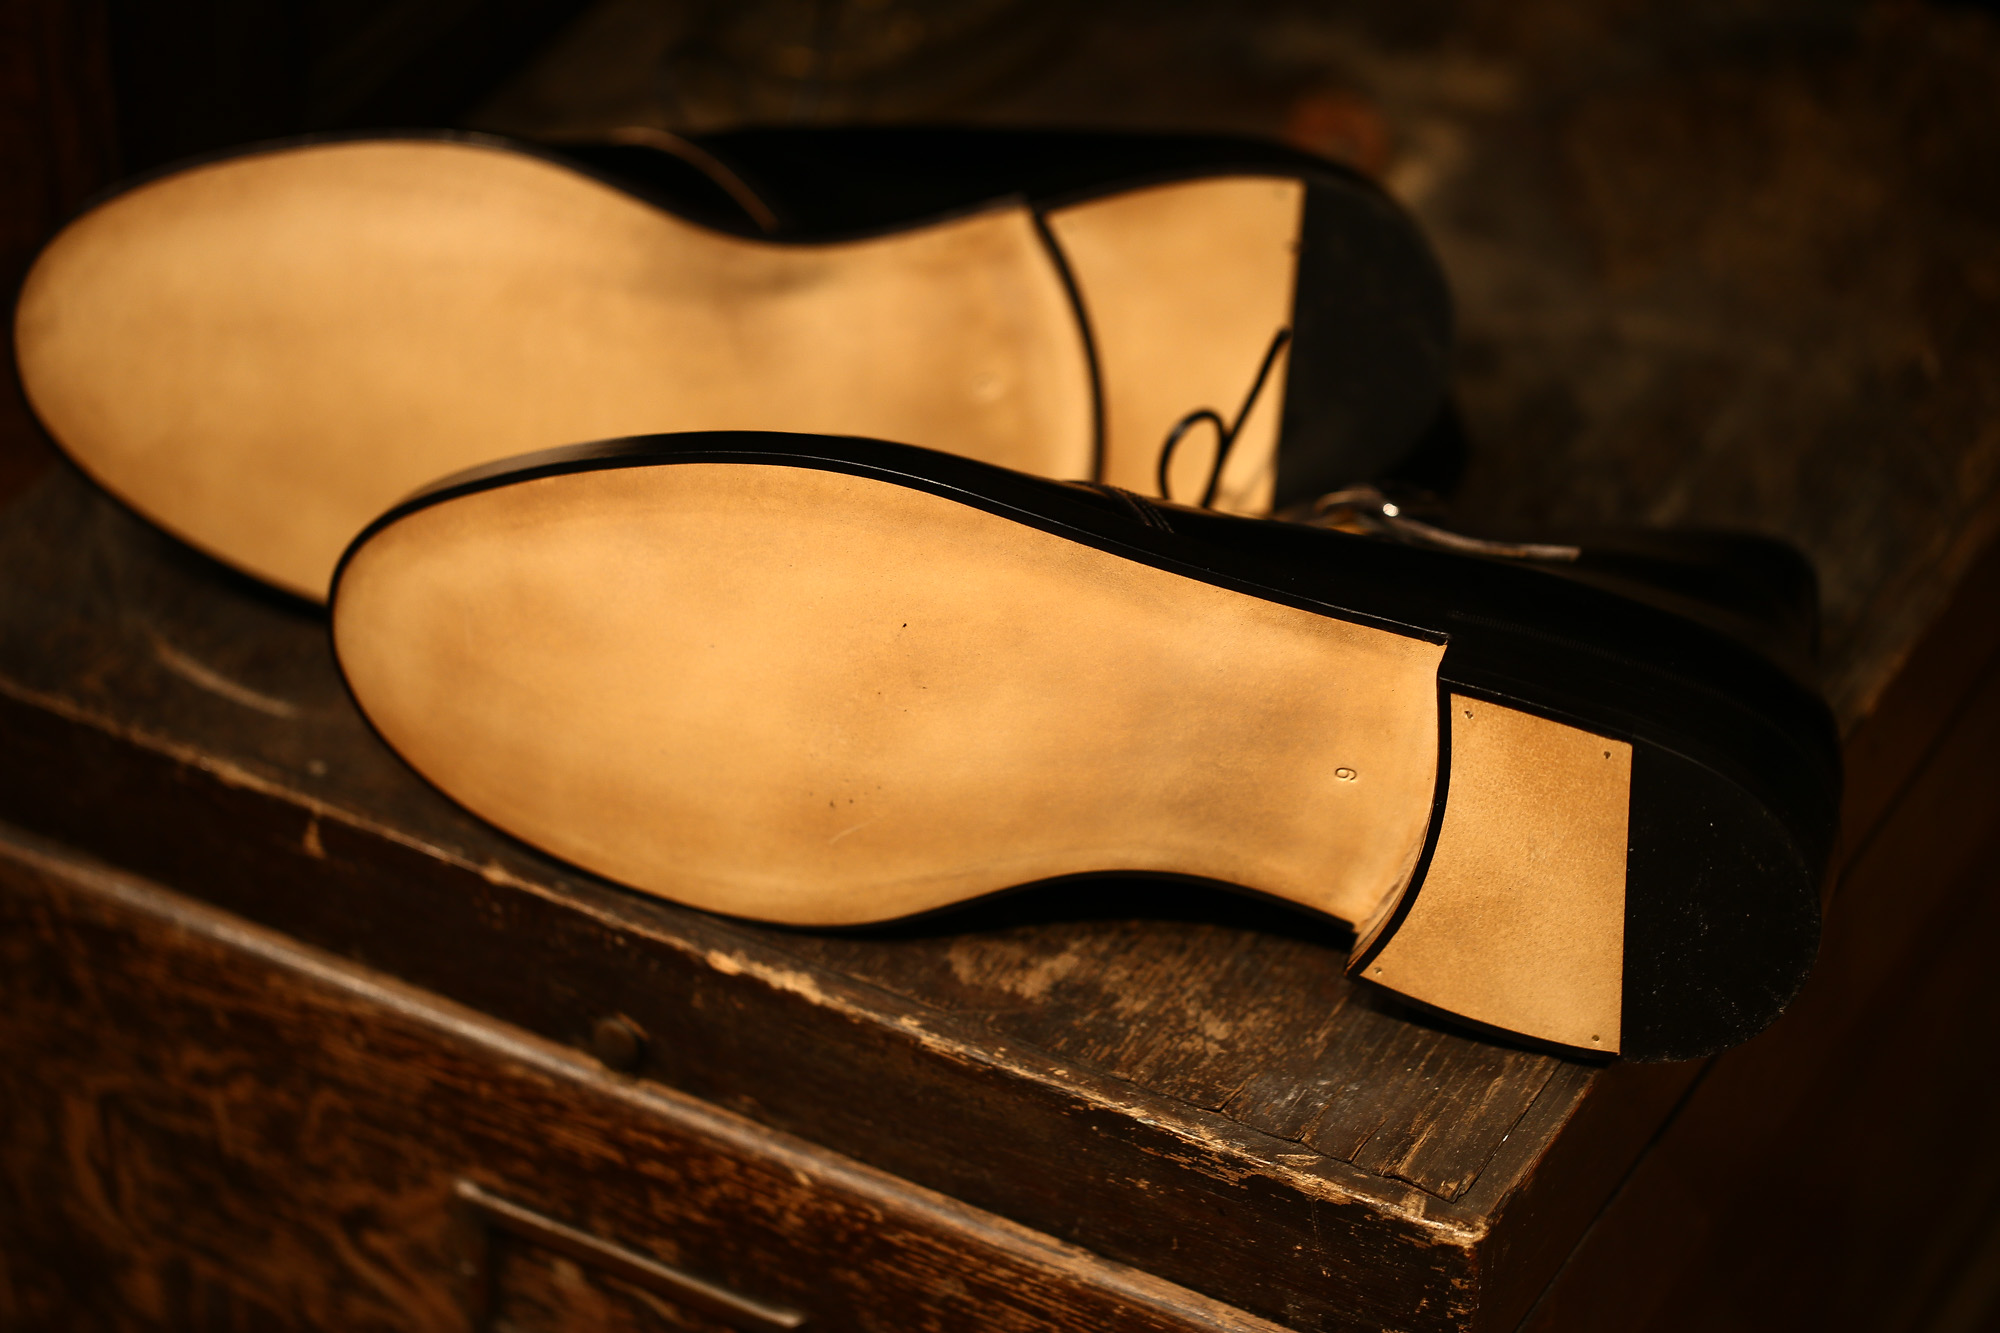 Cuervo (クエルボ)  【2017 AW NEW MODEL】【Derringer / デリンジャー】 CORDOVAN Goodyear Welt Process Double Leather Sole  Chukkaboots BLACK MADE IN JAPAN 【Special Model 1st sample】 cuervoクエルボ チャッカブーツ 愛知 名古屋 Alto e Diritto アルト エ デリット 5.5,6,6.5,7,7.5,8,8.5,9,9.5